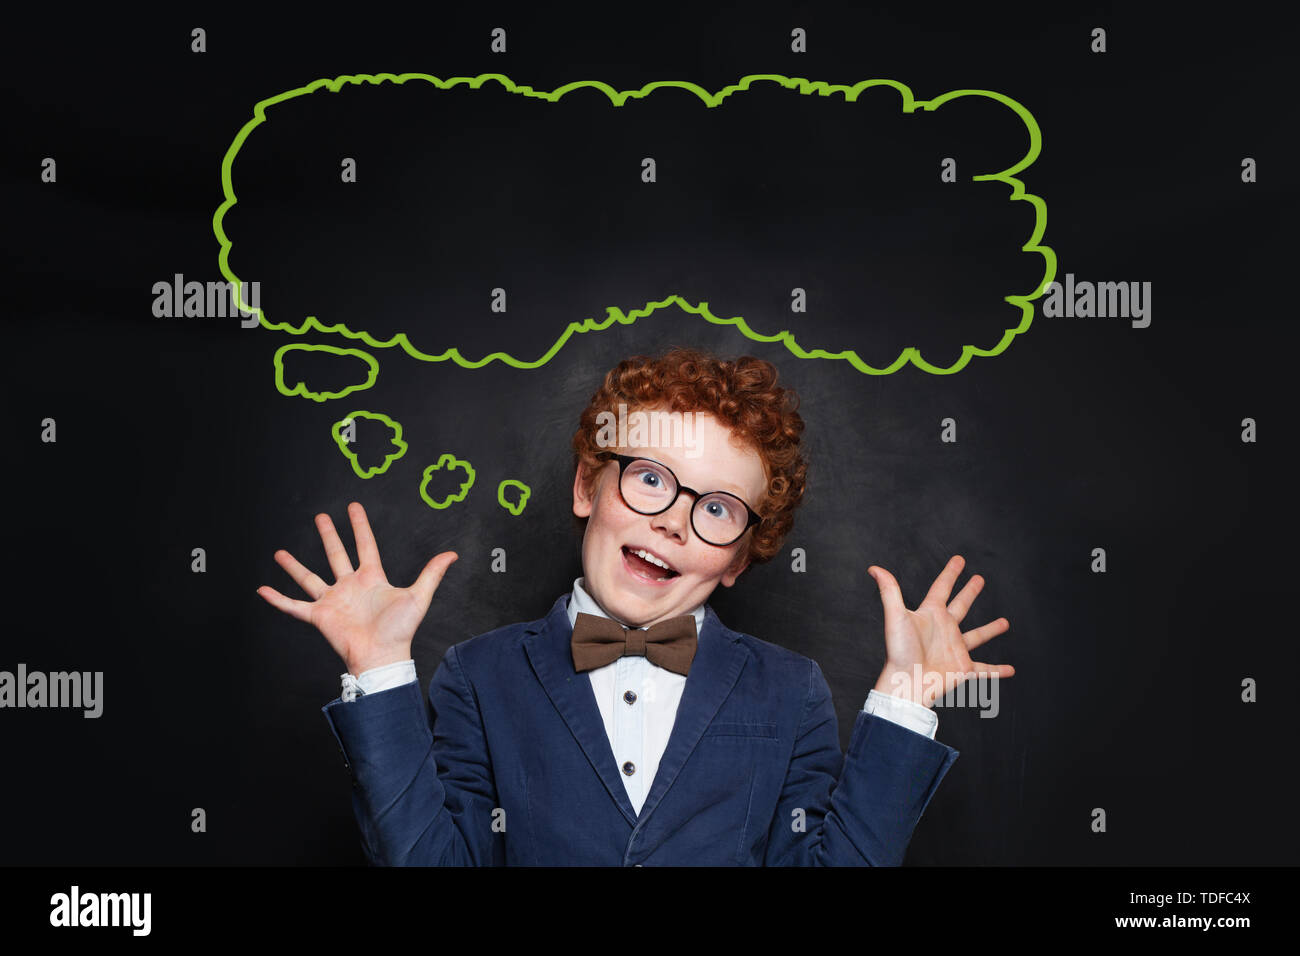 Funny mischievous child boy and empty speech clouds bubbles on chalkboard background Stock Photo